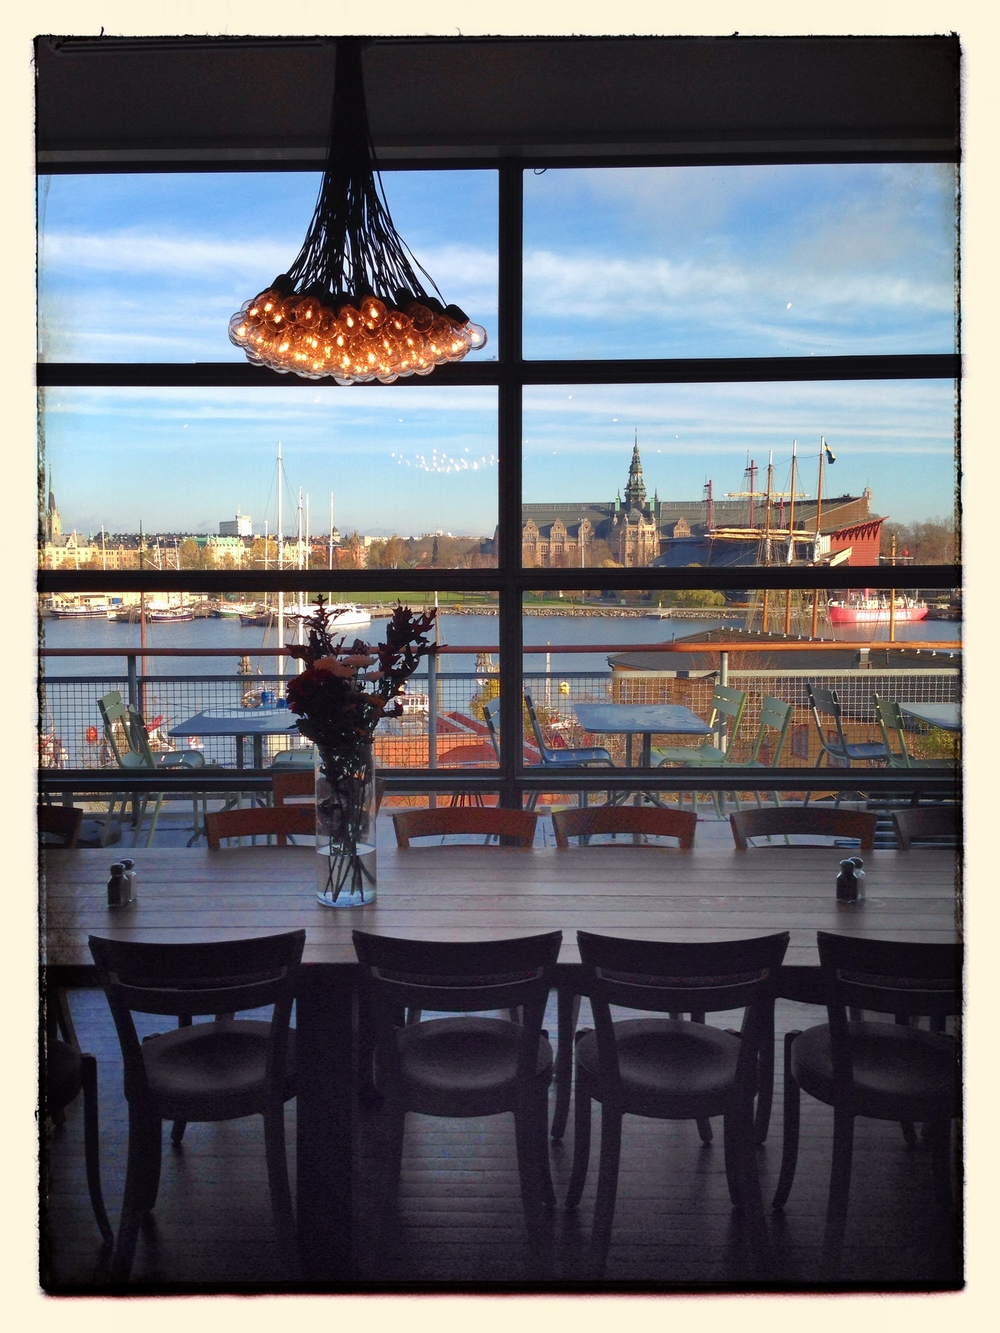 View from the café in Moderna Museet on the island of Skeppsholmen in Stockholm © 2014 Design Story Works LLC